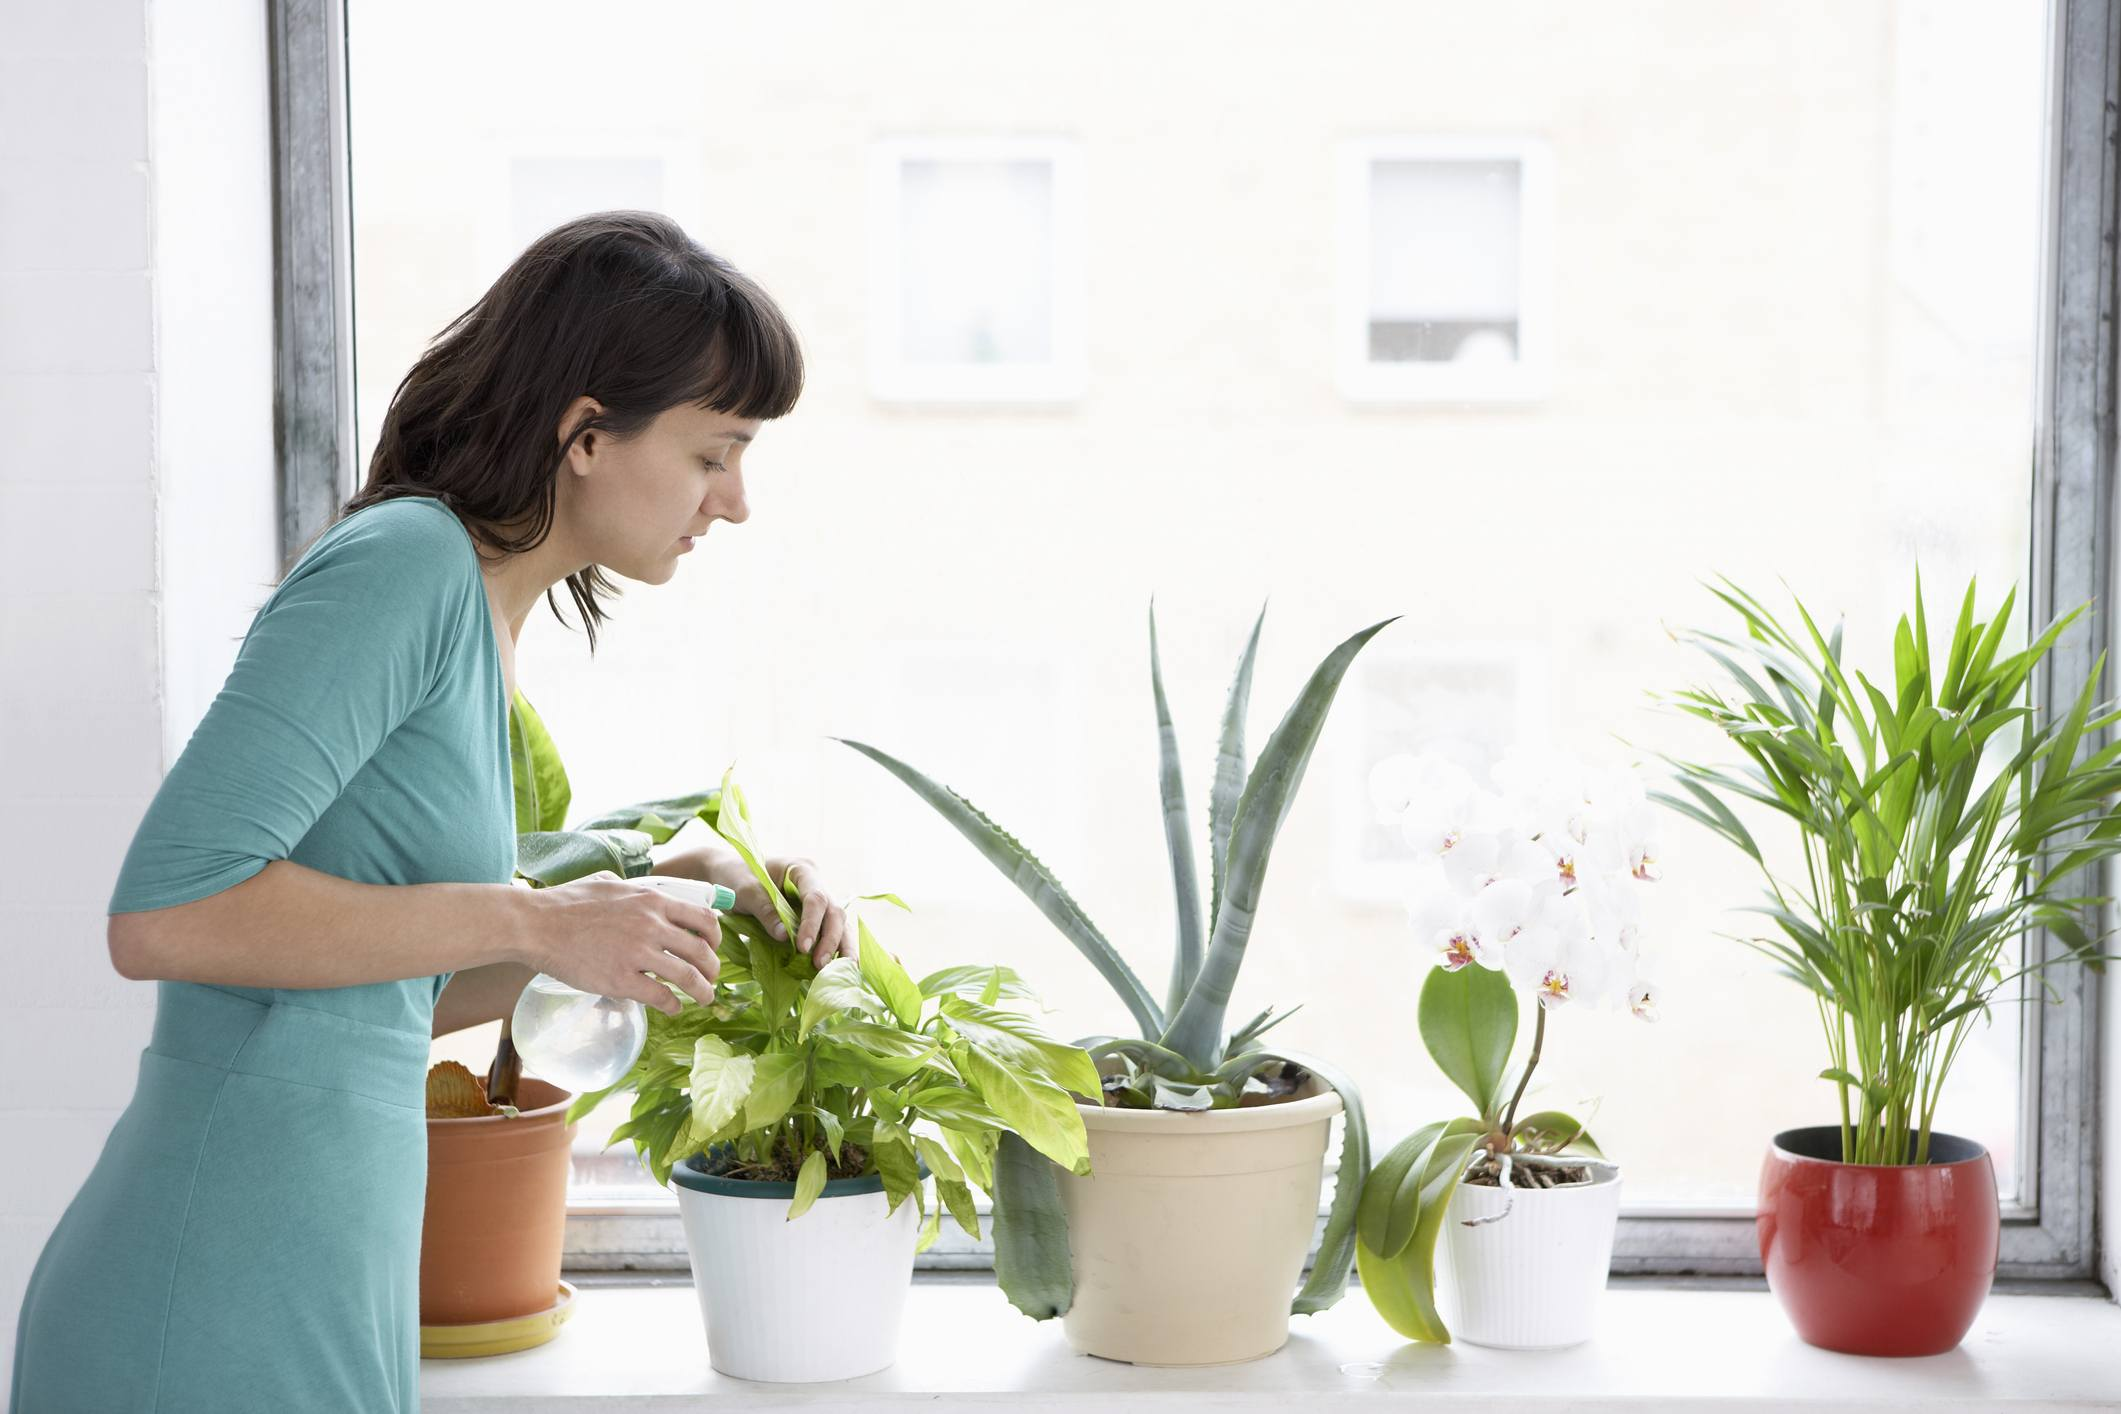 Woman Sprays Plants In Flowerpots